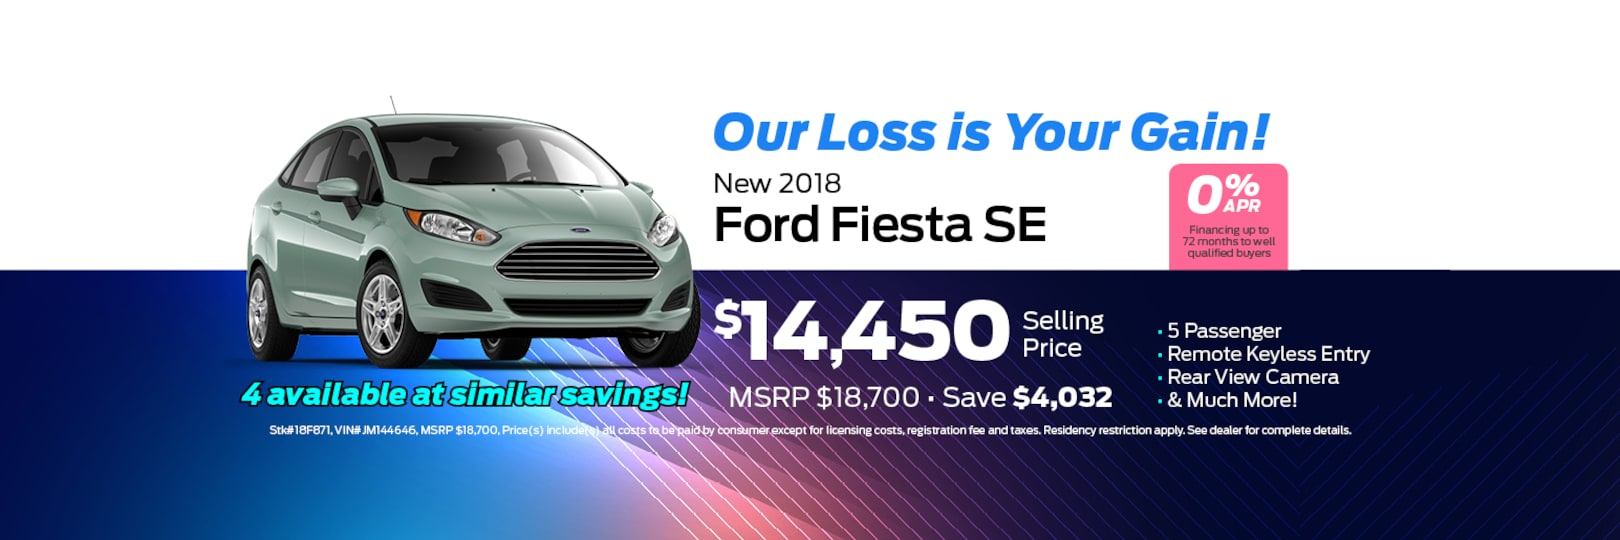 Ford Dealership in Rye, NY | New 2019 & Used Cars Near White Plains